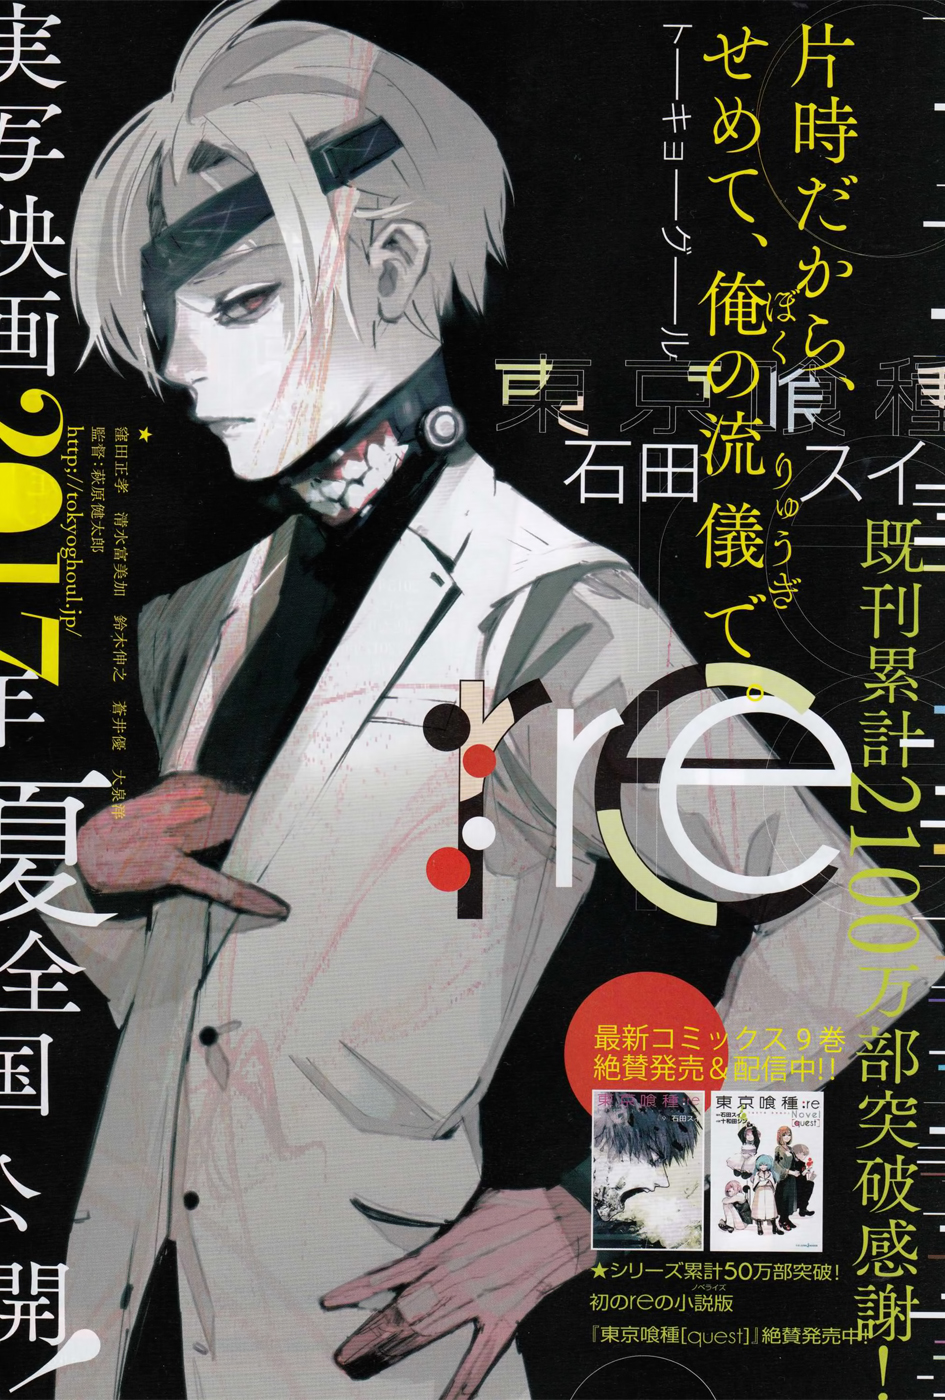 Tokyo Ghoul: Re Chapter 106-2